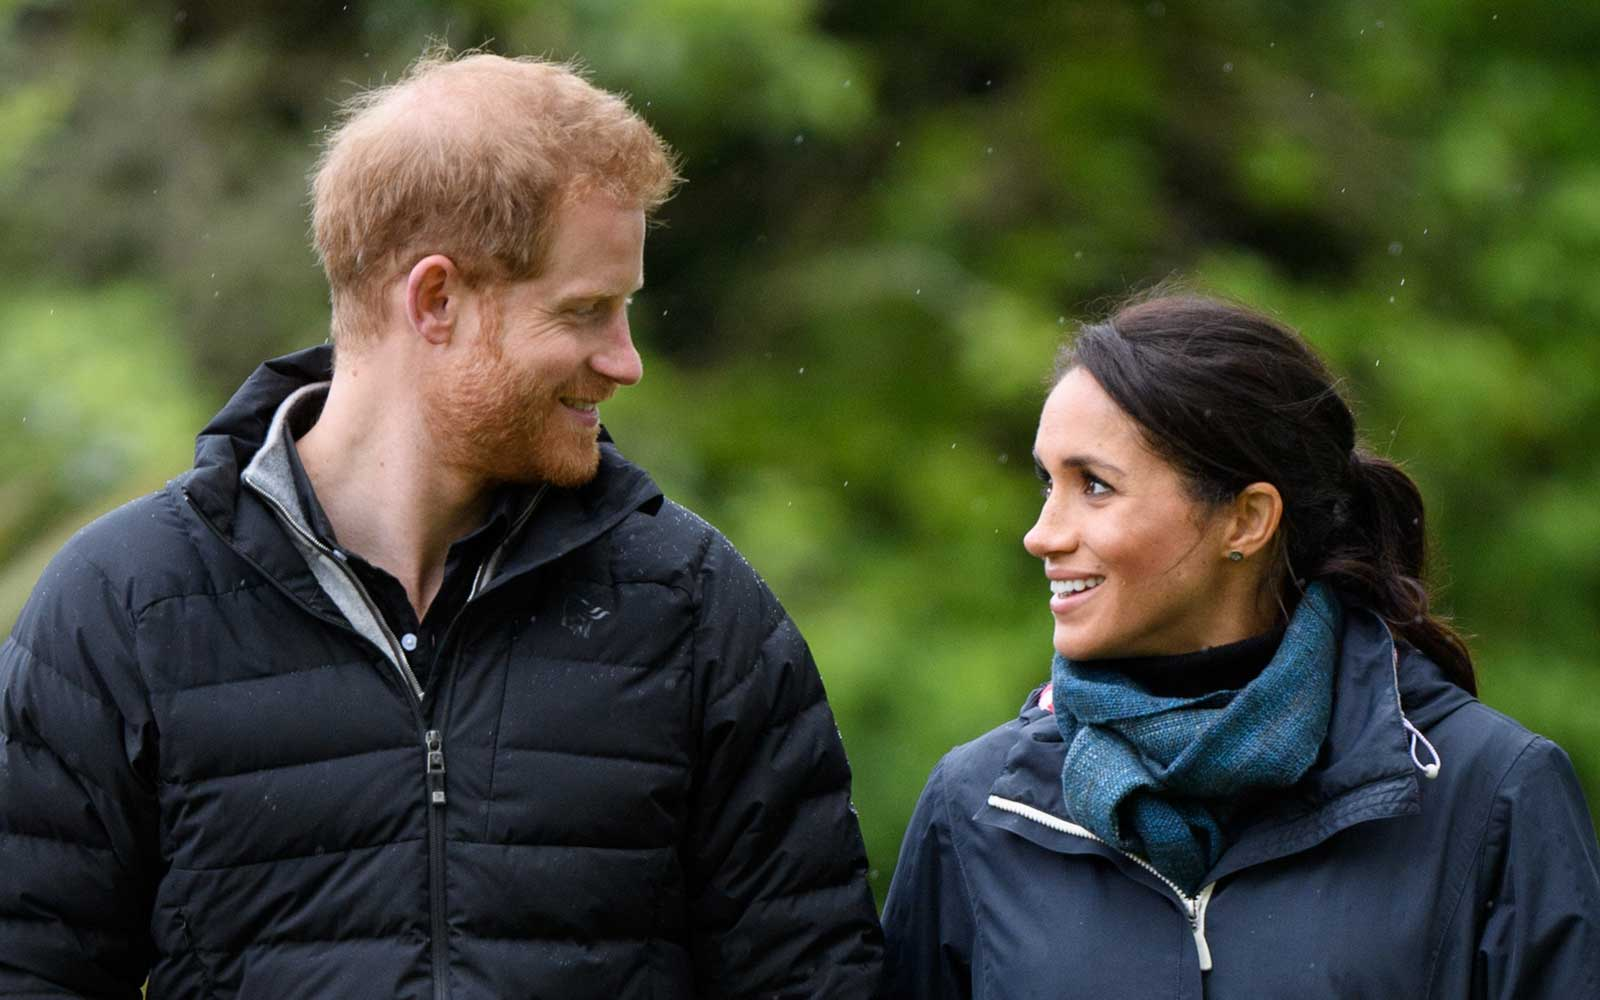 Meghan Markle and Prince Harry Have Been on Instagram for One Day and They Already Broke a Record